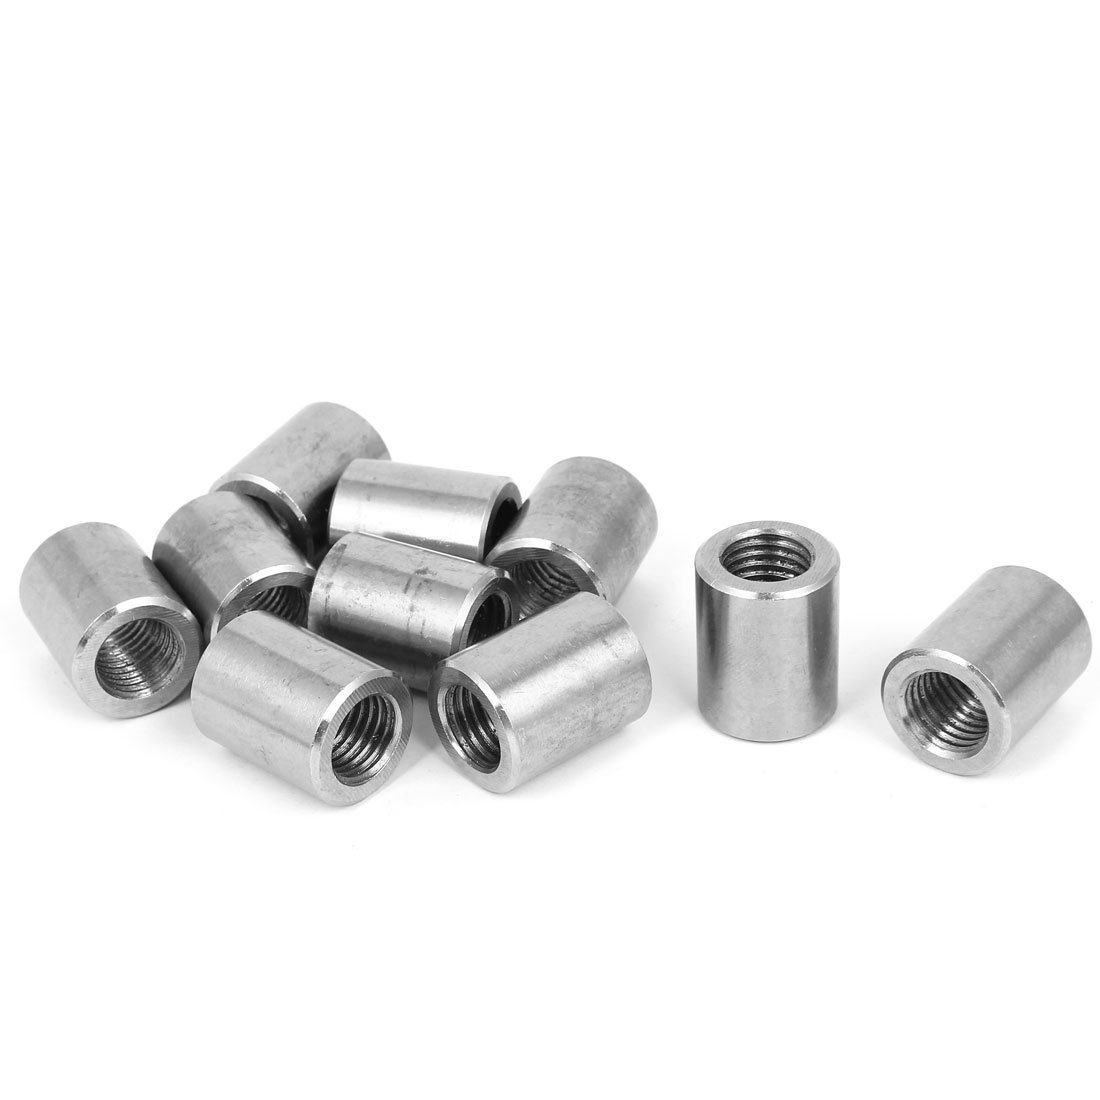 uxcell M16x2mm Threaded Insert Tube Rose Joint Adapter Round Connector Nuts 10 Pcs